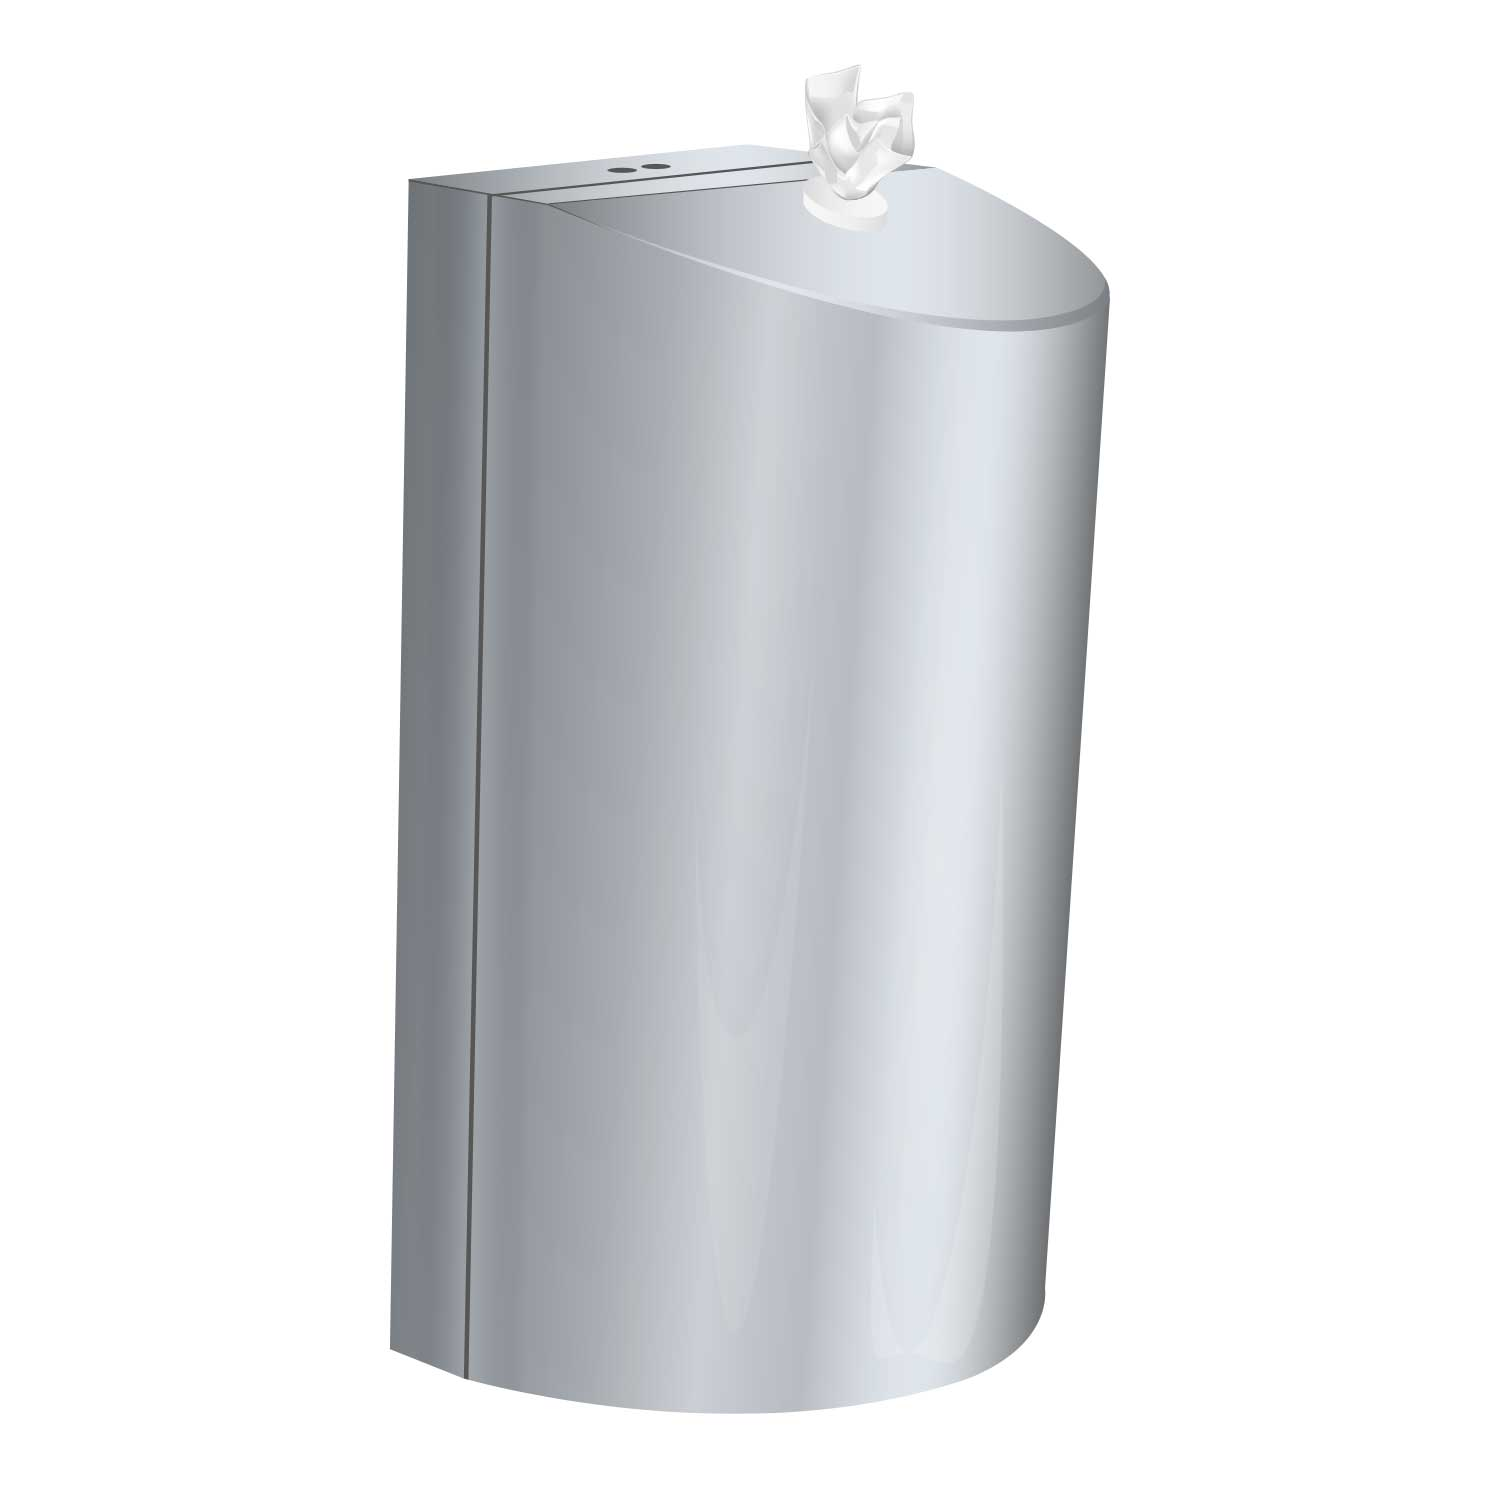 Stainless Steel wall mounted dispenser / small